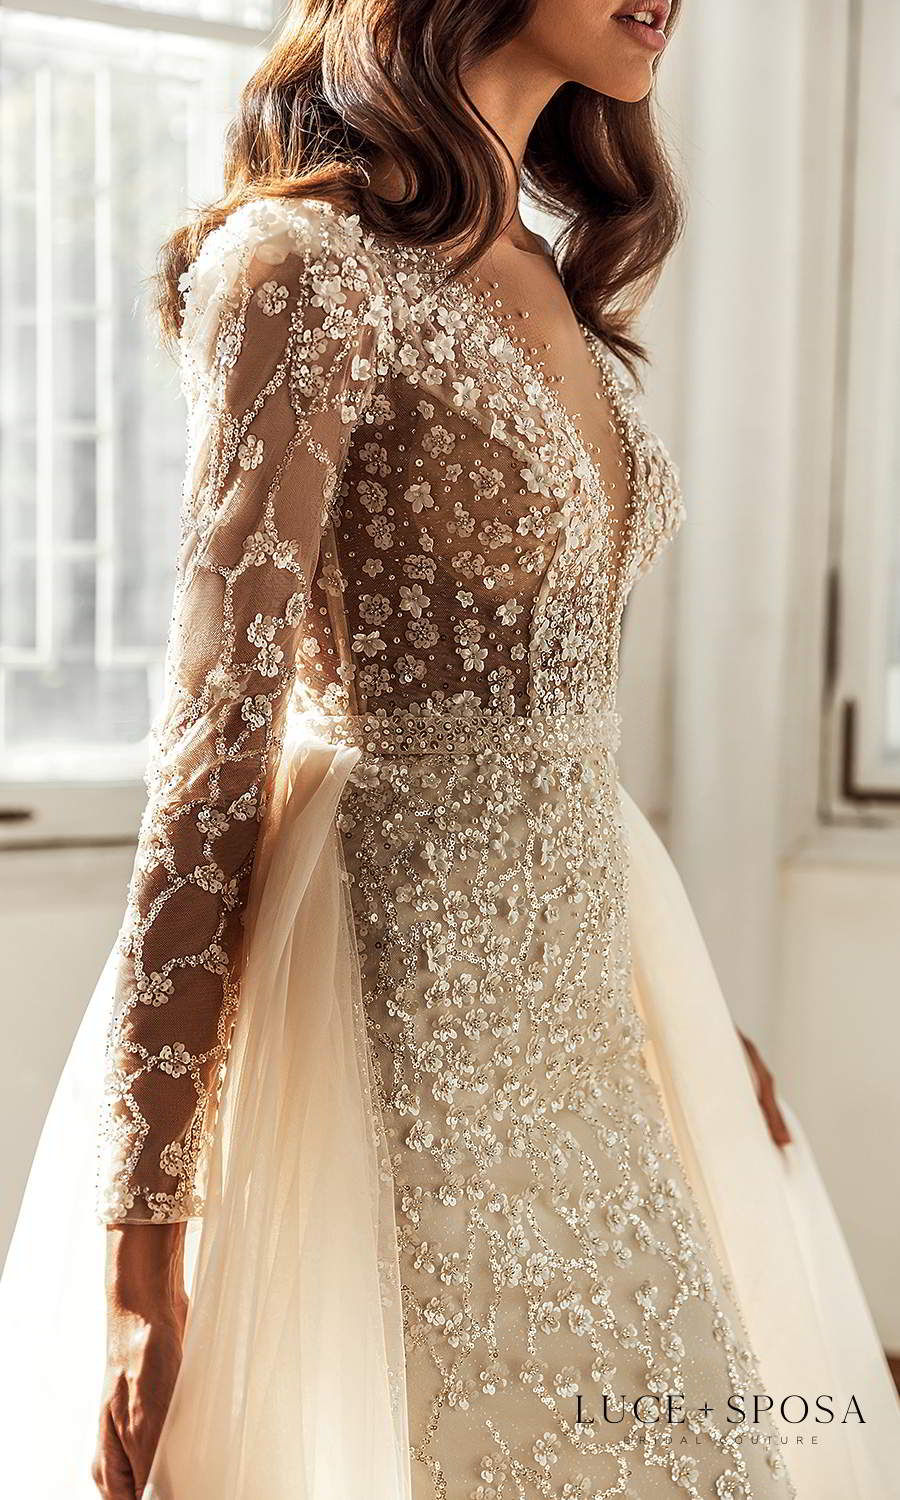 luce sposa 2021 shades of couture bridal long sleeves plunging v neckline fully embellished sheath wedding dress ball gown overskirt chapel train (melody) zsv